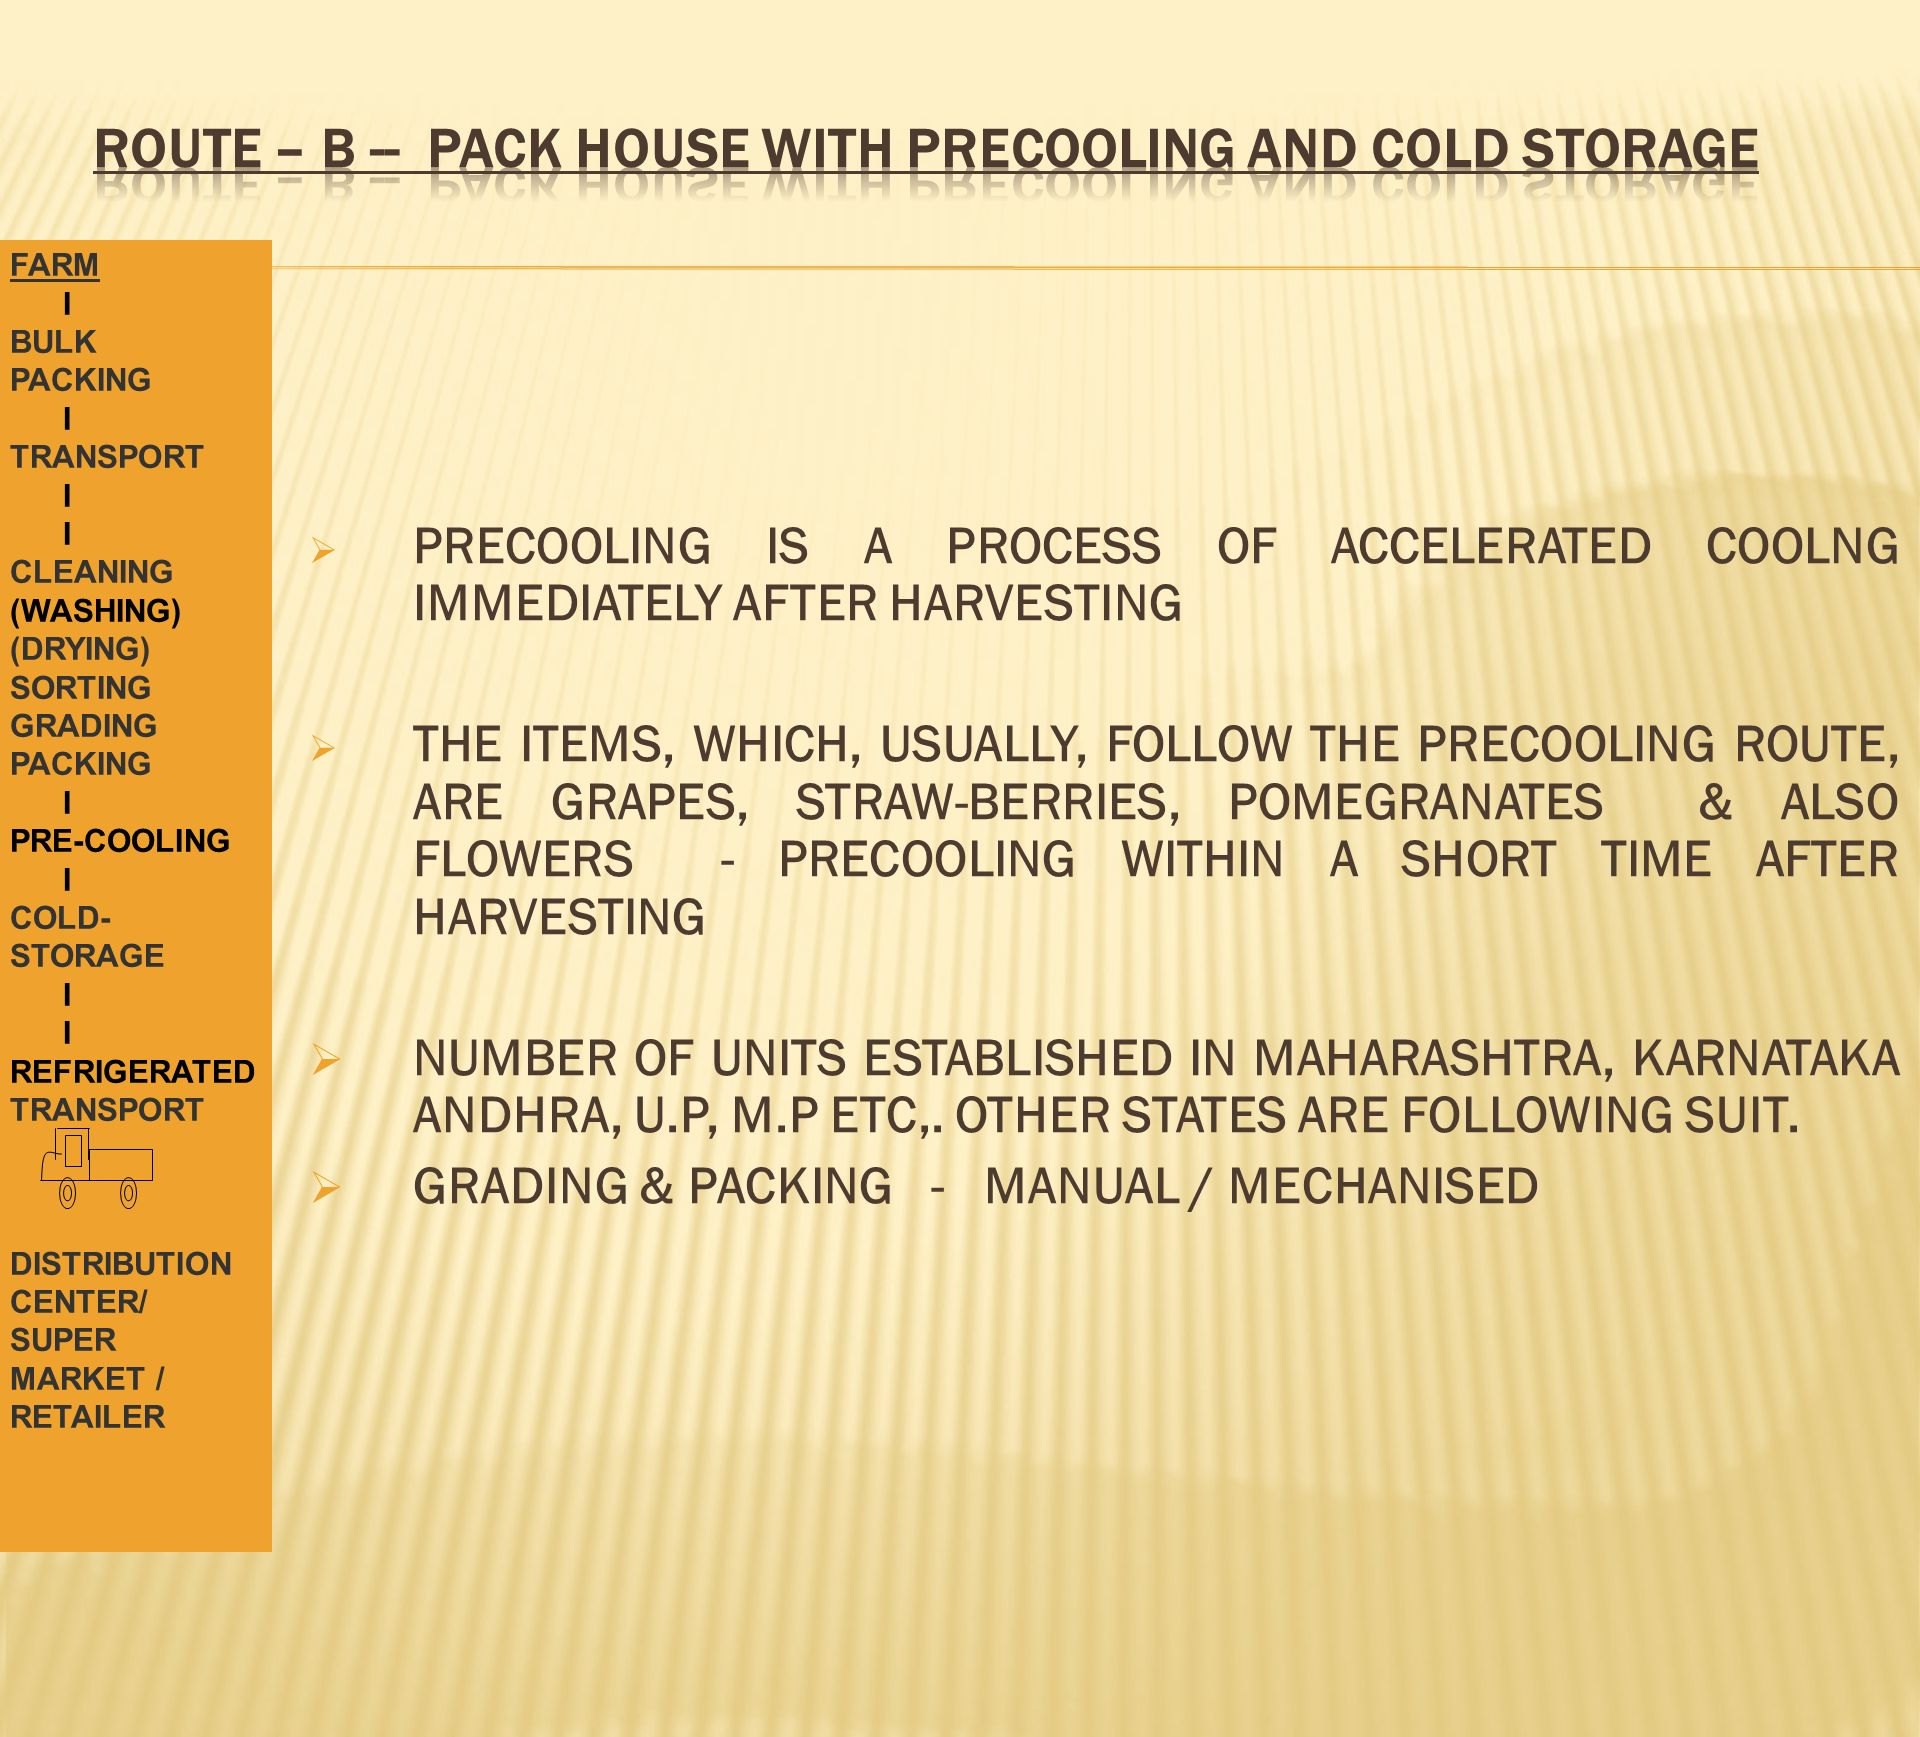 ROUTE – B -- PACK HOUSE WITH PRECOOLING AND COLD STORAGE